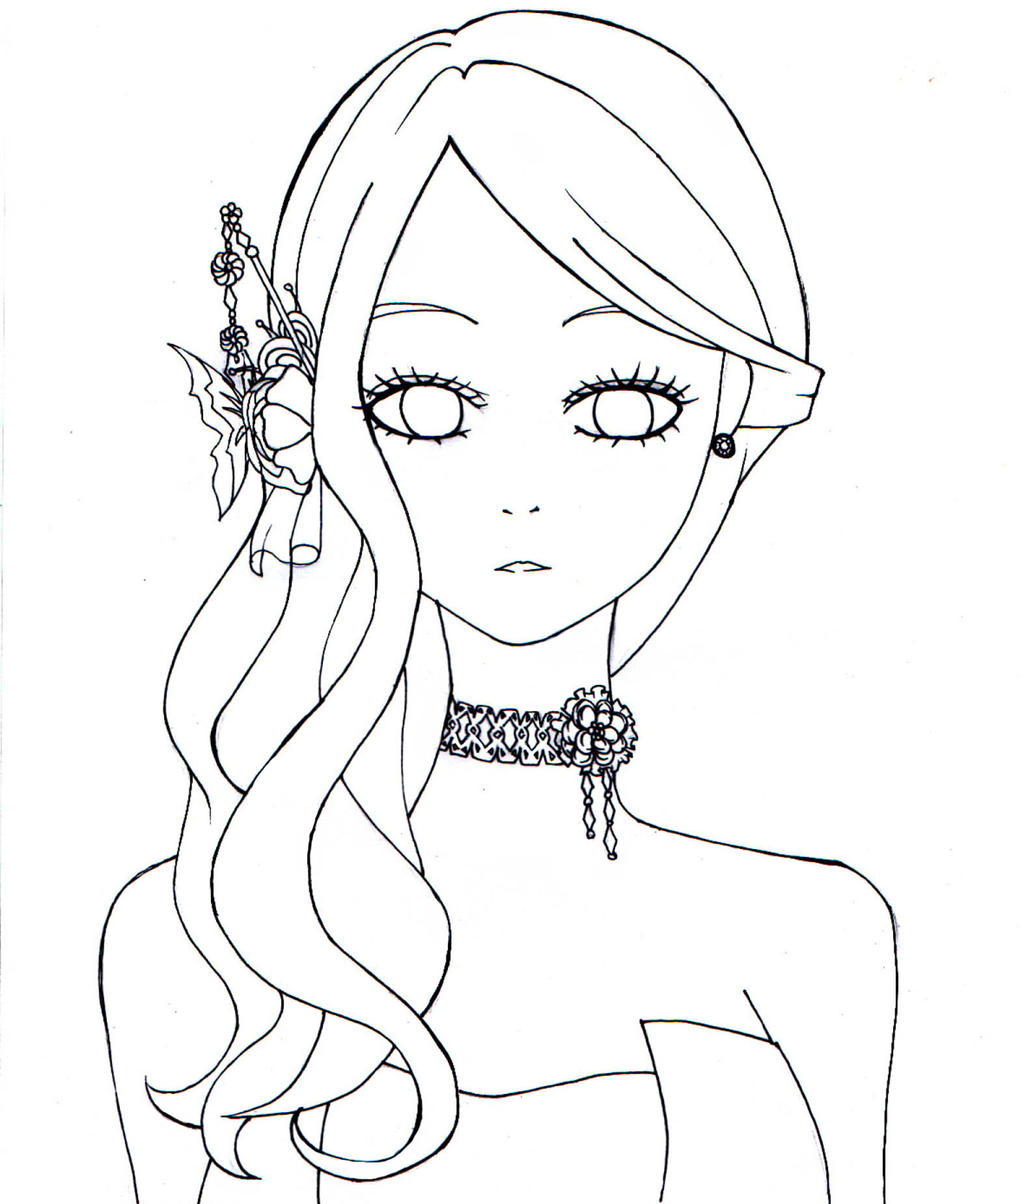 Free Line Art : My fair lady adeiona free line art by chubbycheeksmylove